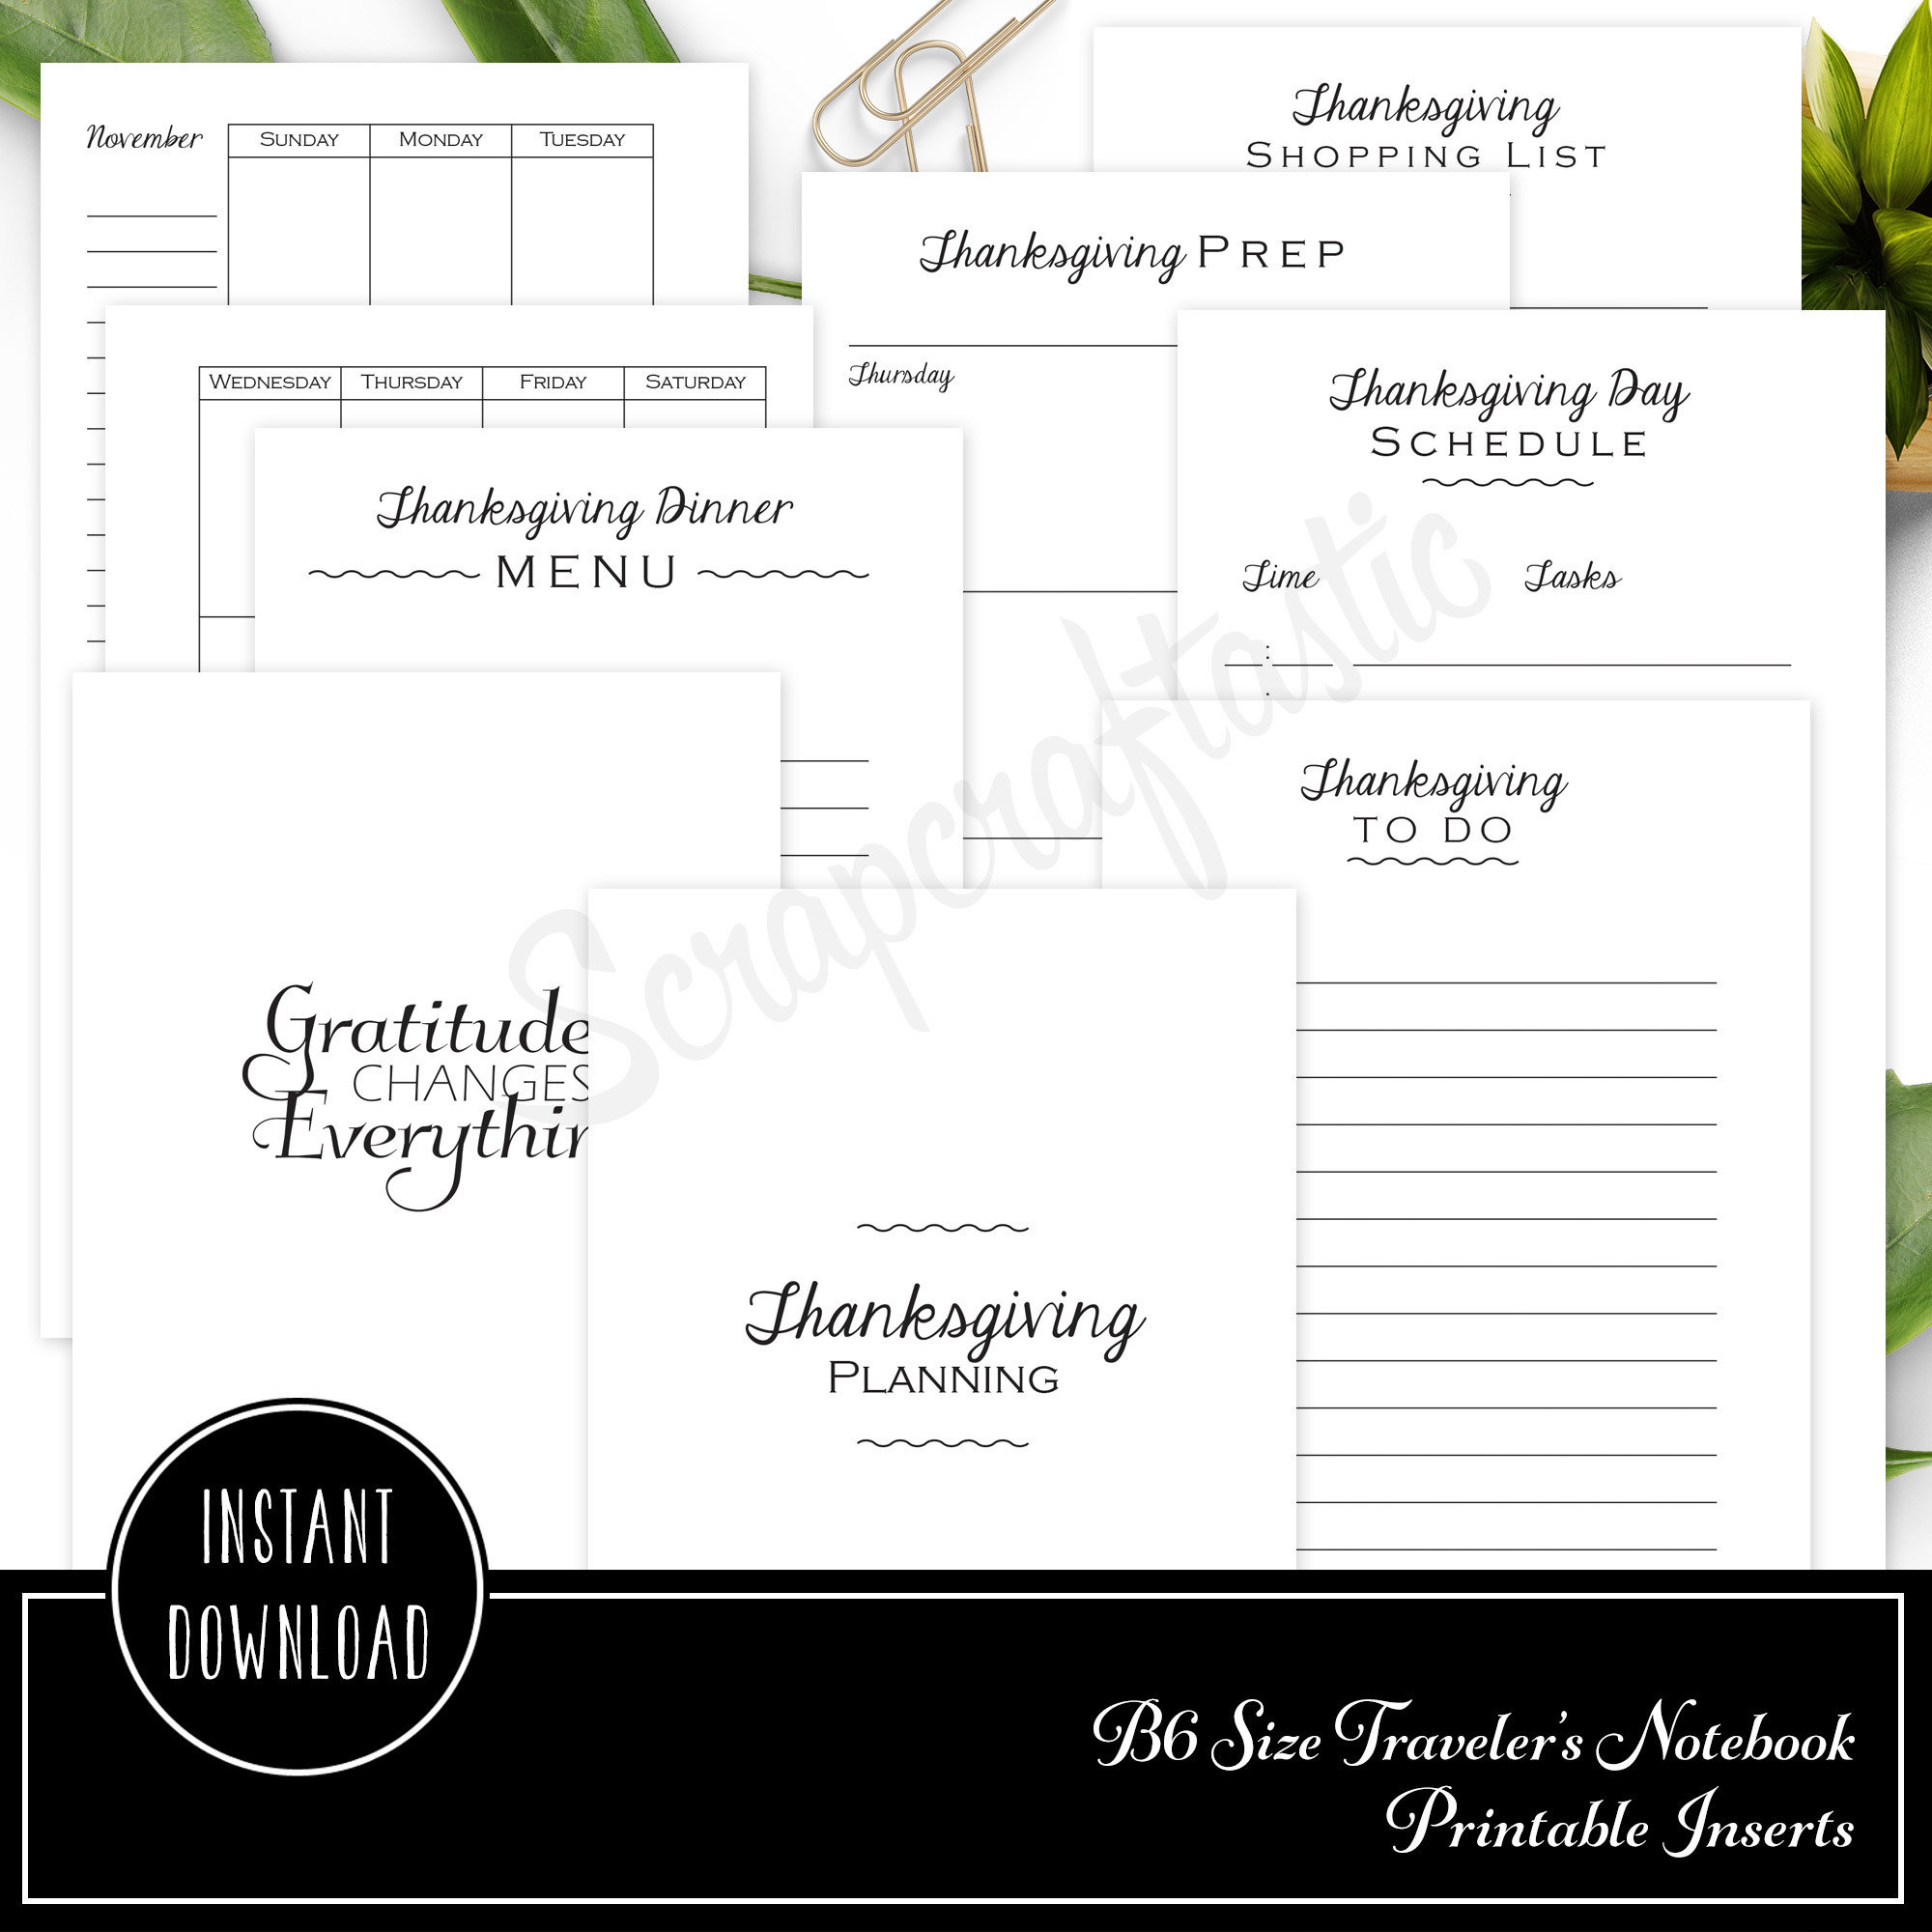 Thanksgiving Planning Printable B6 Traveler's Notebook Inserts 40008